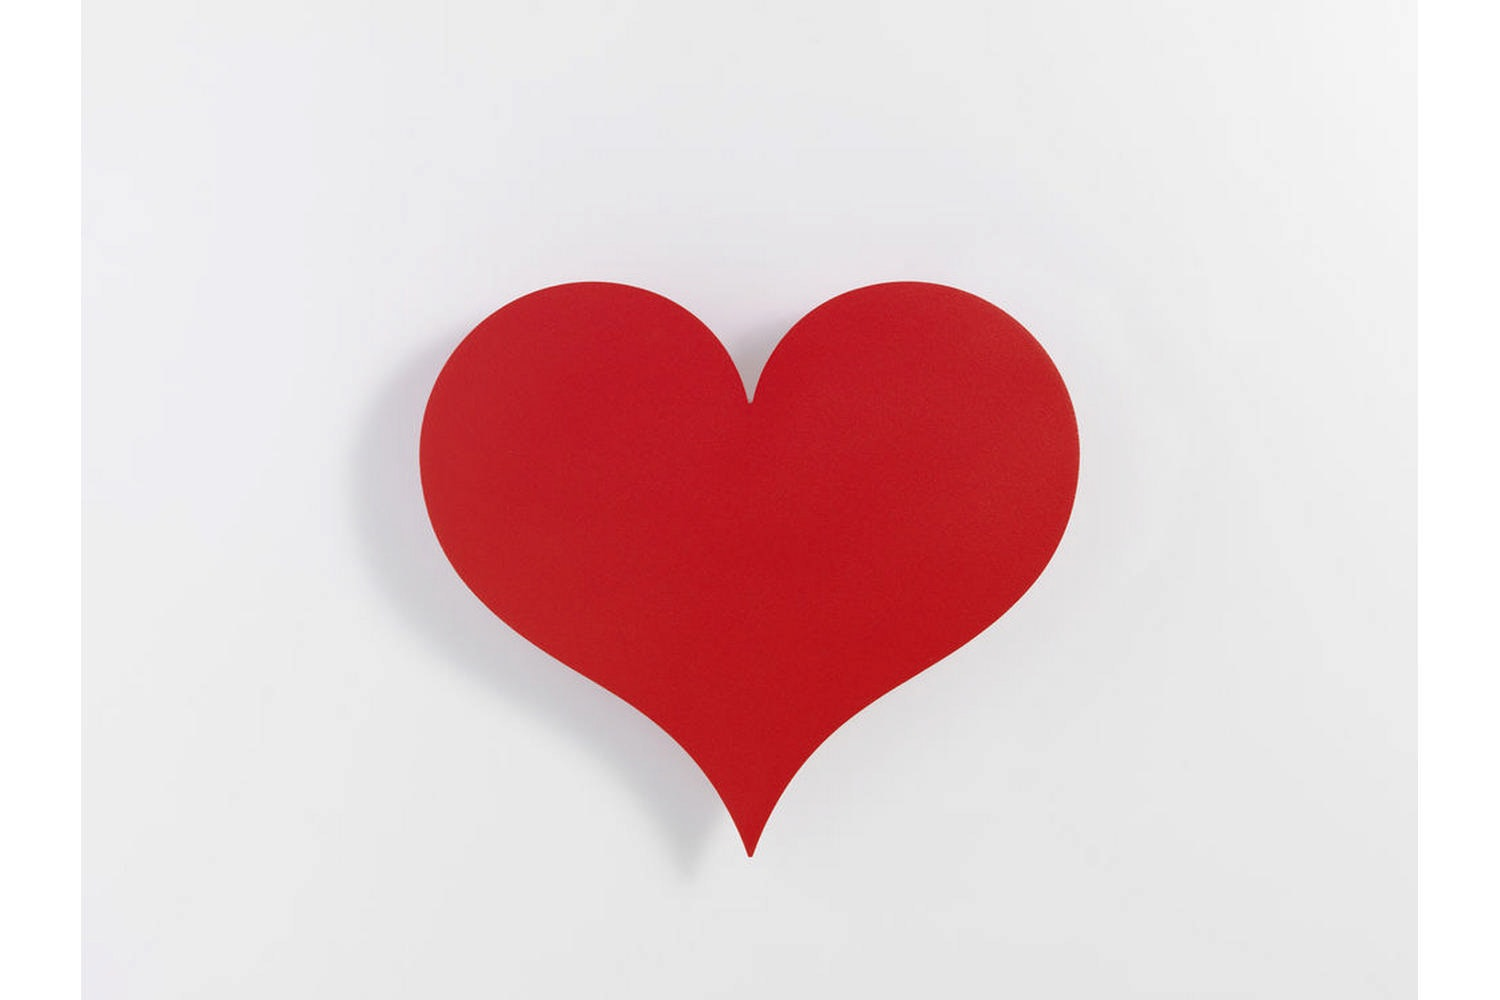 Metal Wall Relief - Little Heart Red by Alexander Girard for Vitra